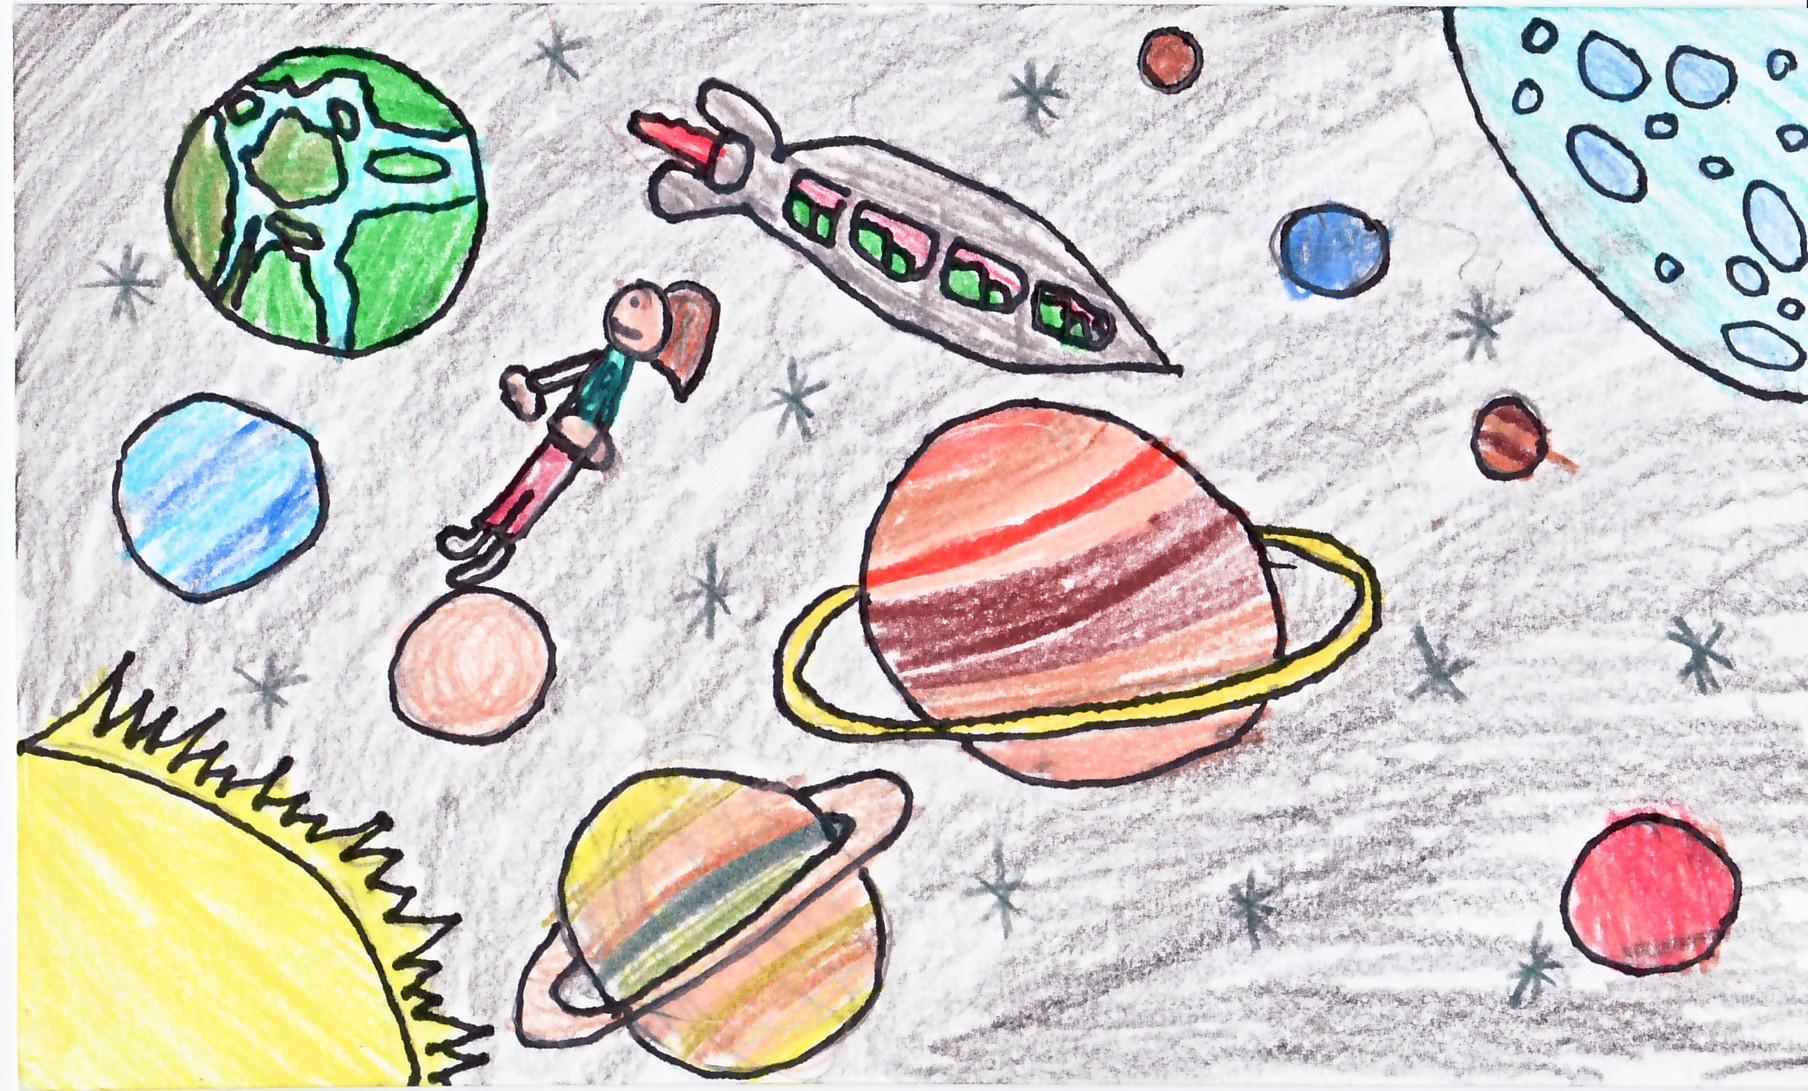 kids drawings create amaze